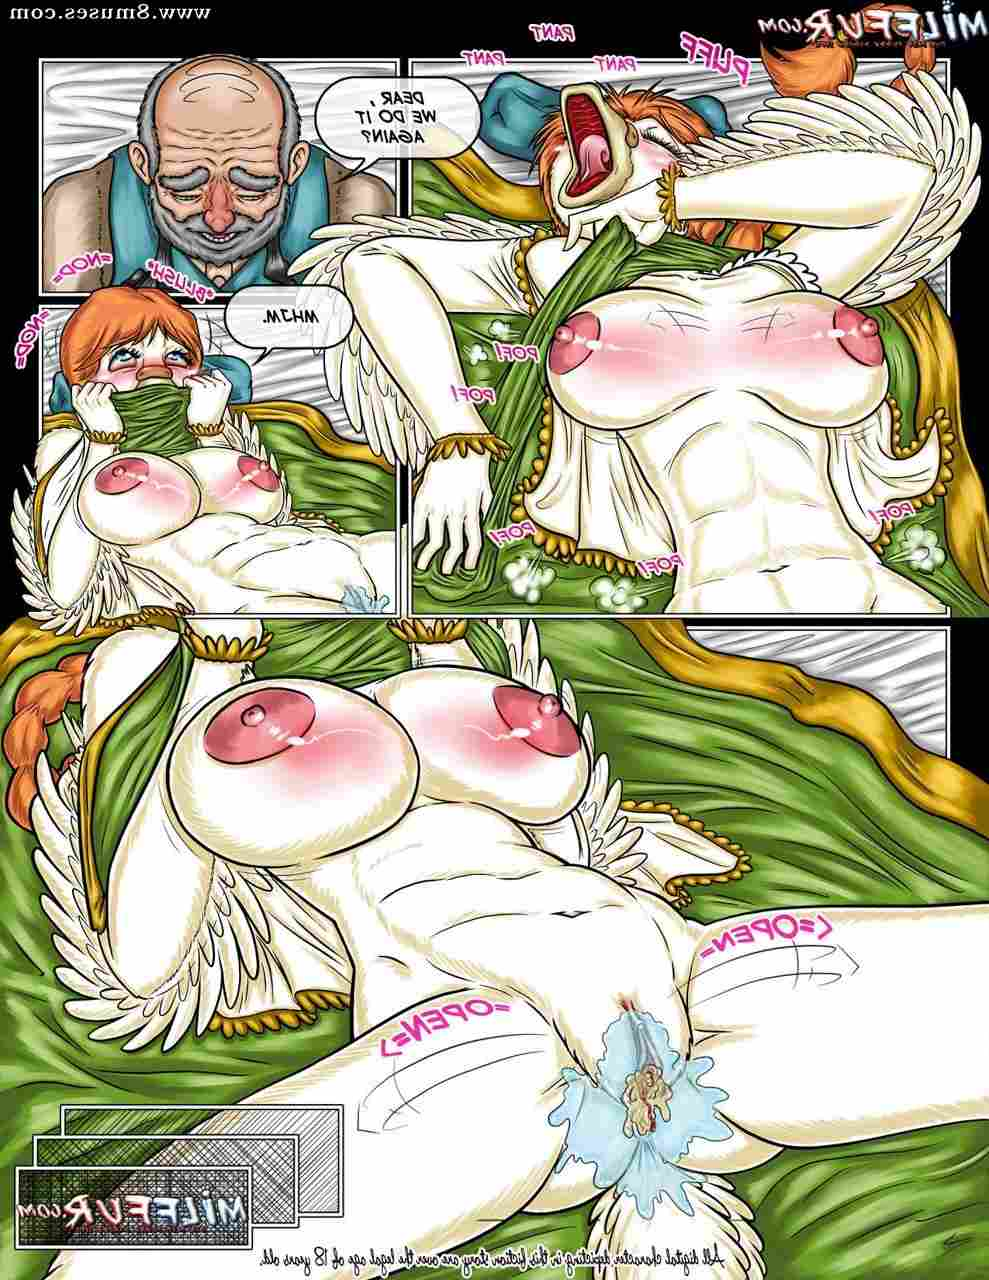 Milffur-Comics/Wild-Wild-West Wild_Wild_West__8muses_-_Sex_and_Porn_Comics_26.jpg